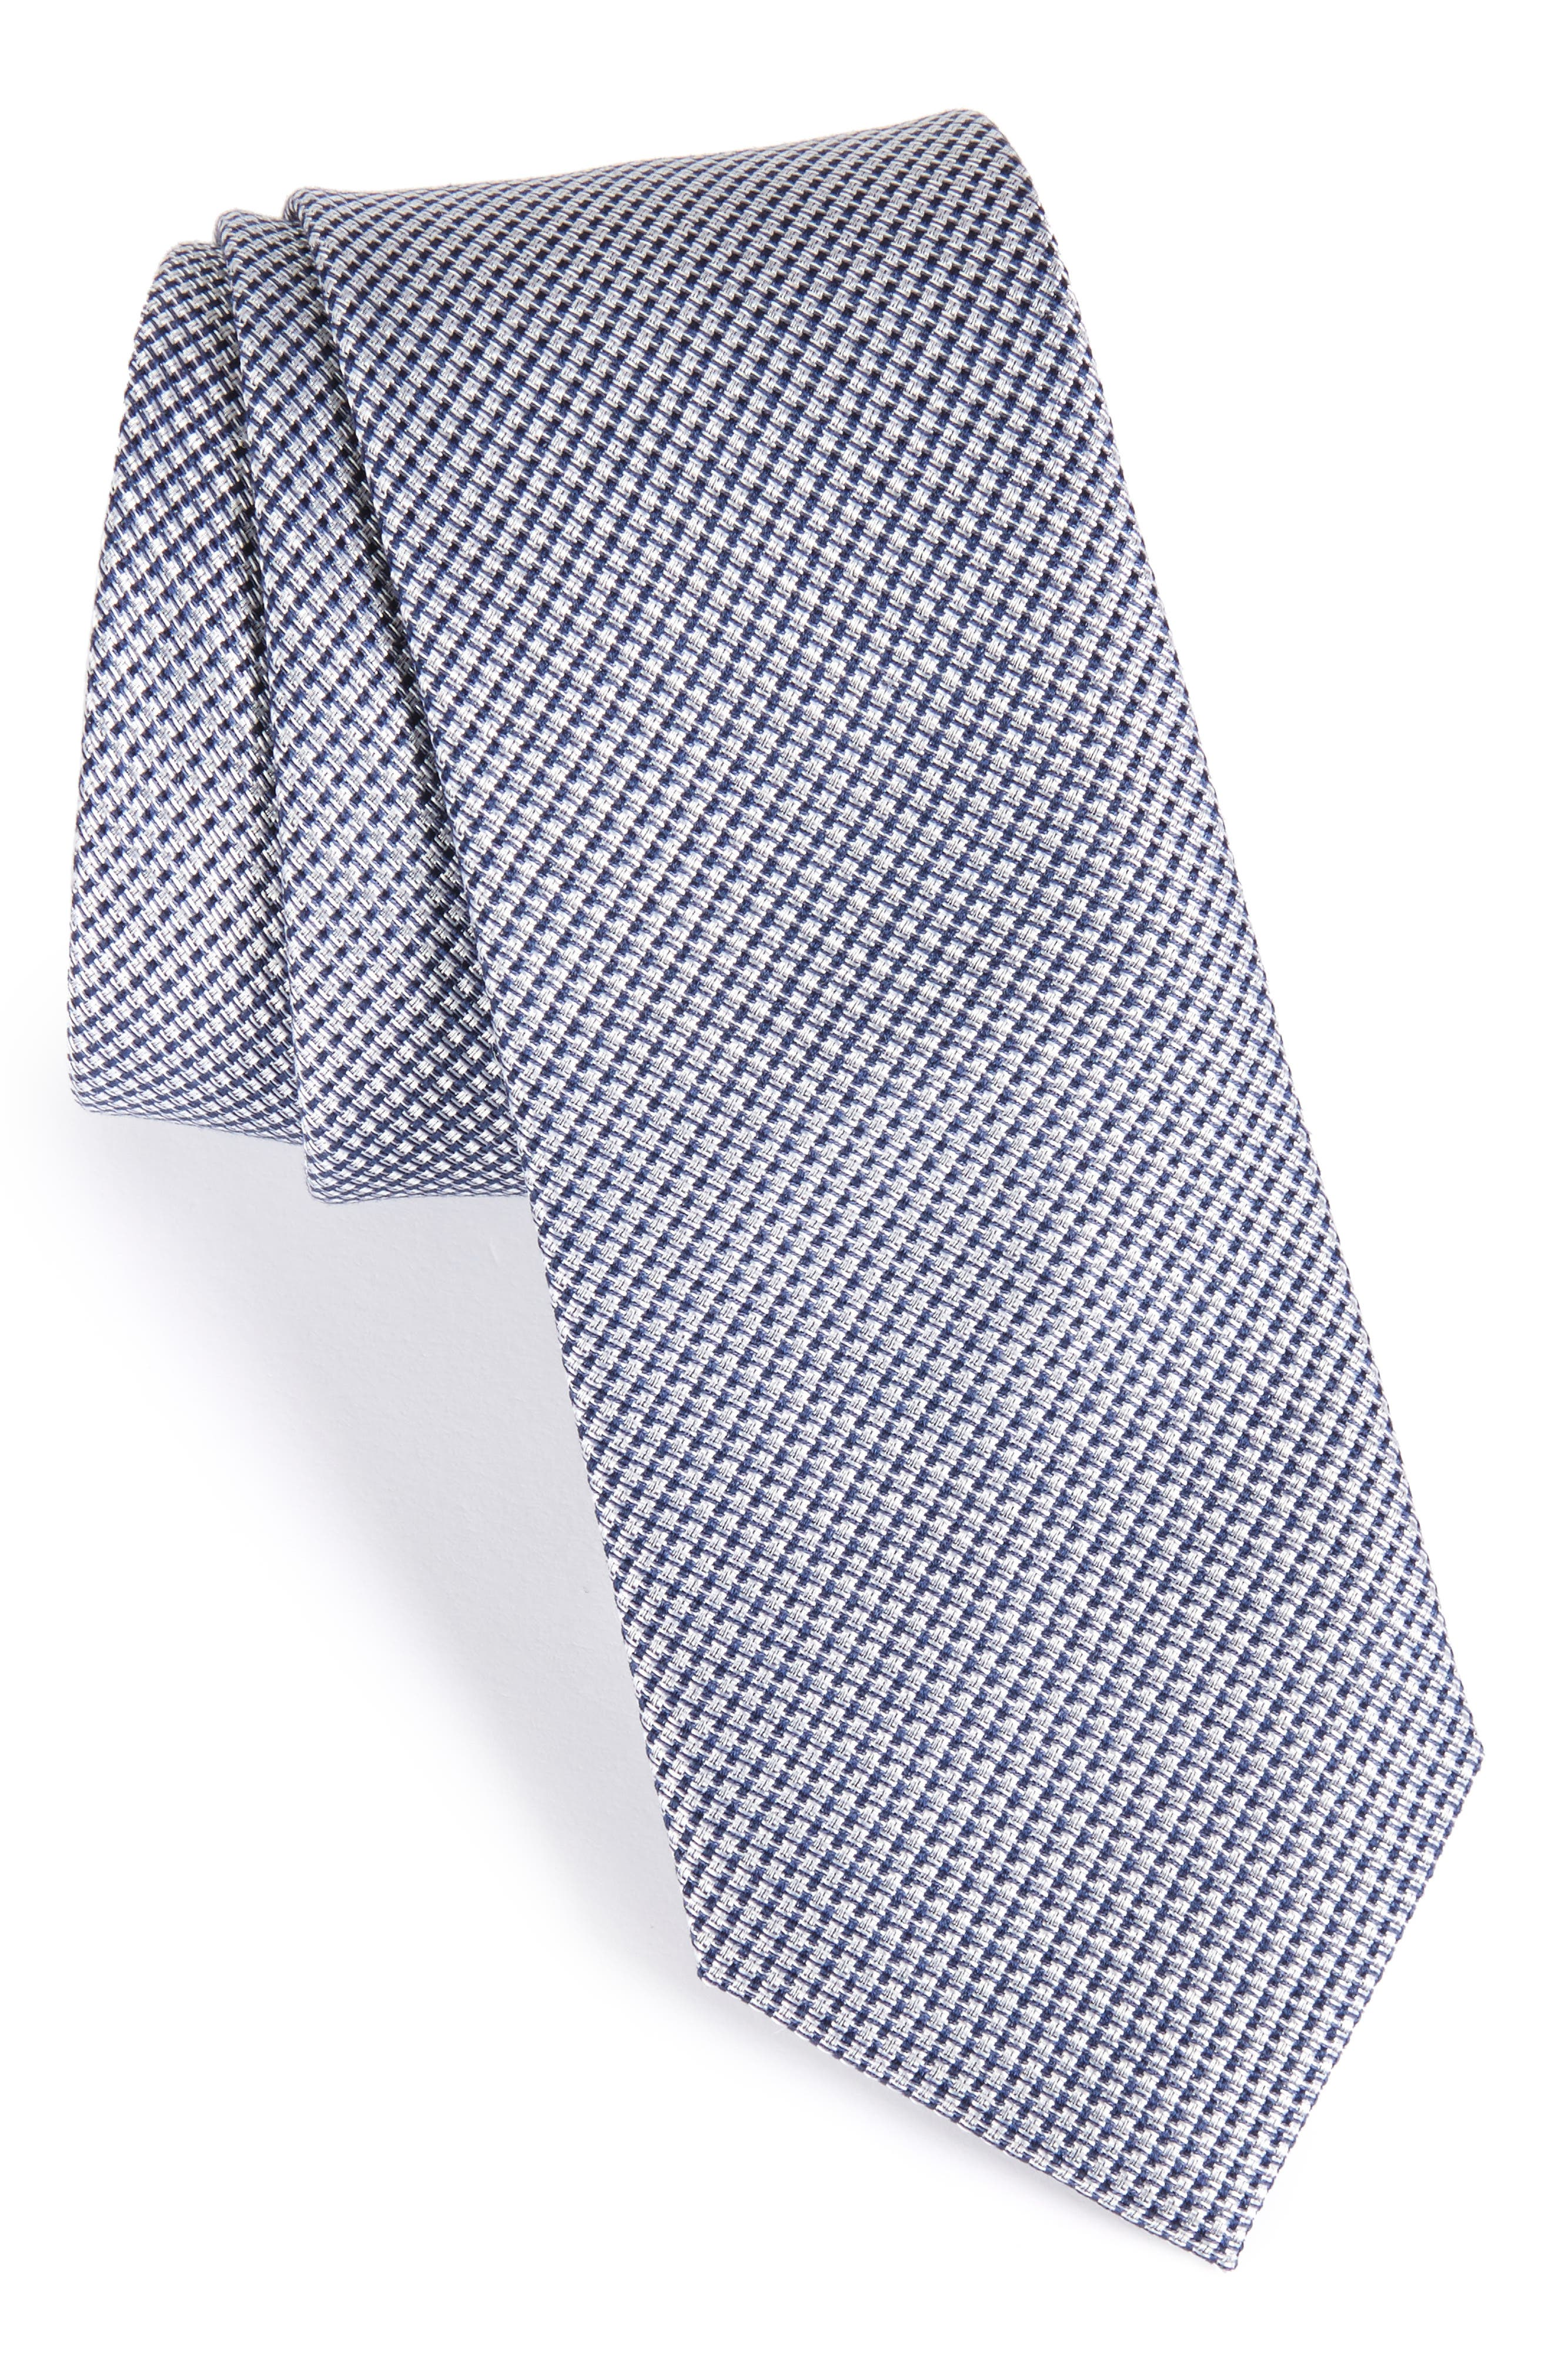 Solid Silk & Cotton Skinny Tie,                             Main thumbnail 1, color,                             Navy